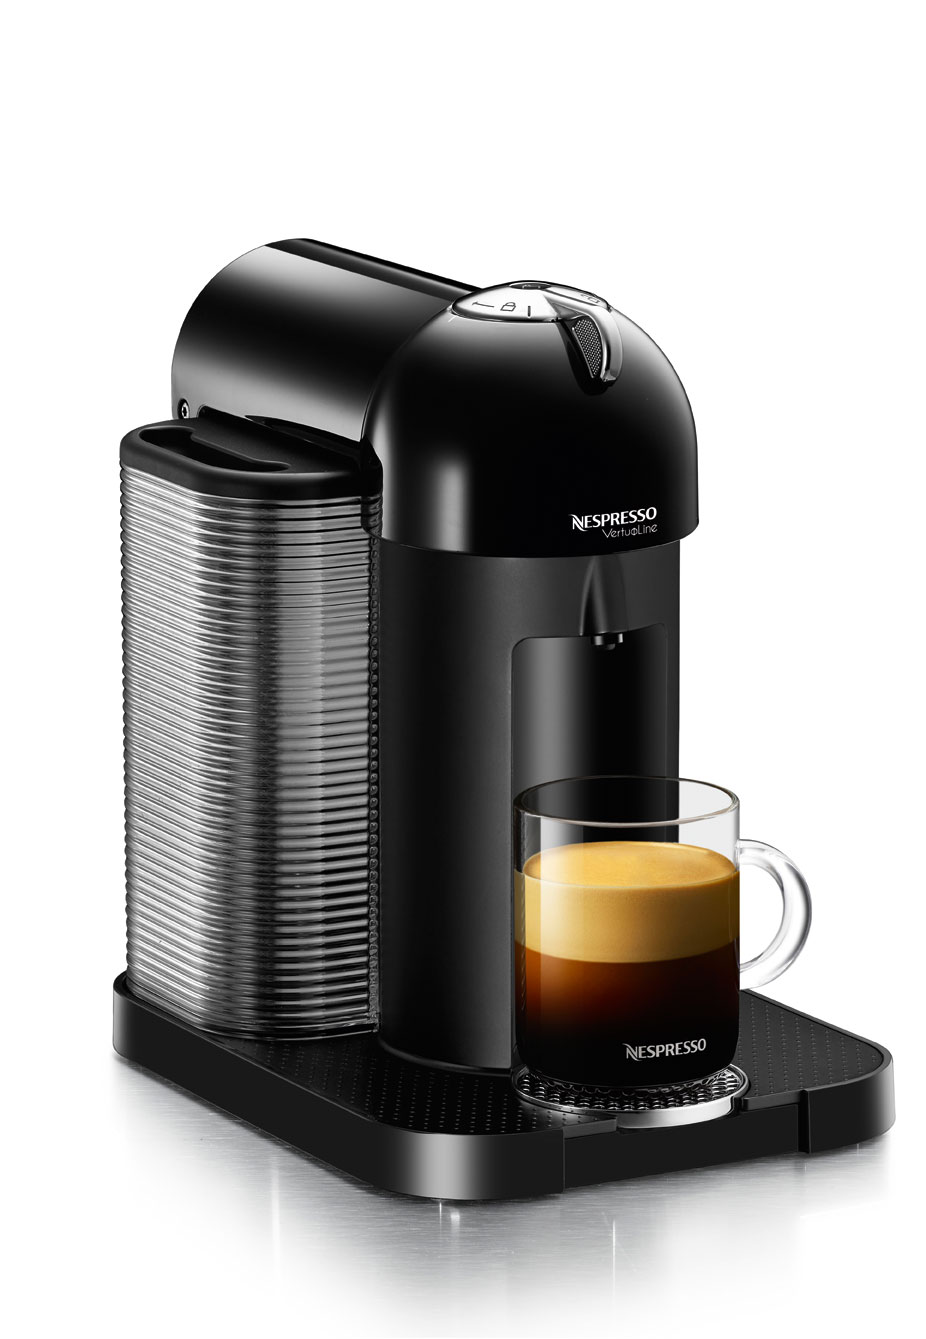 Nespresso. Start your morning with a great cup of coffee at the touch of a button with a nespresso maker. In about seconds, a yummy cup of coffee, espresso or flavored drink can ready to drink from certain brands.